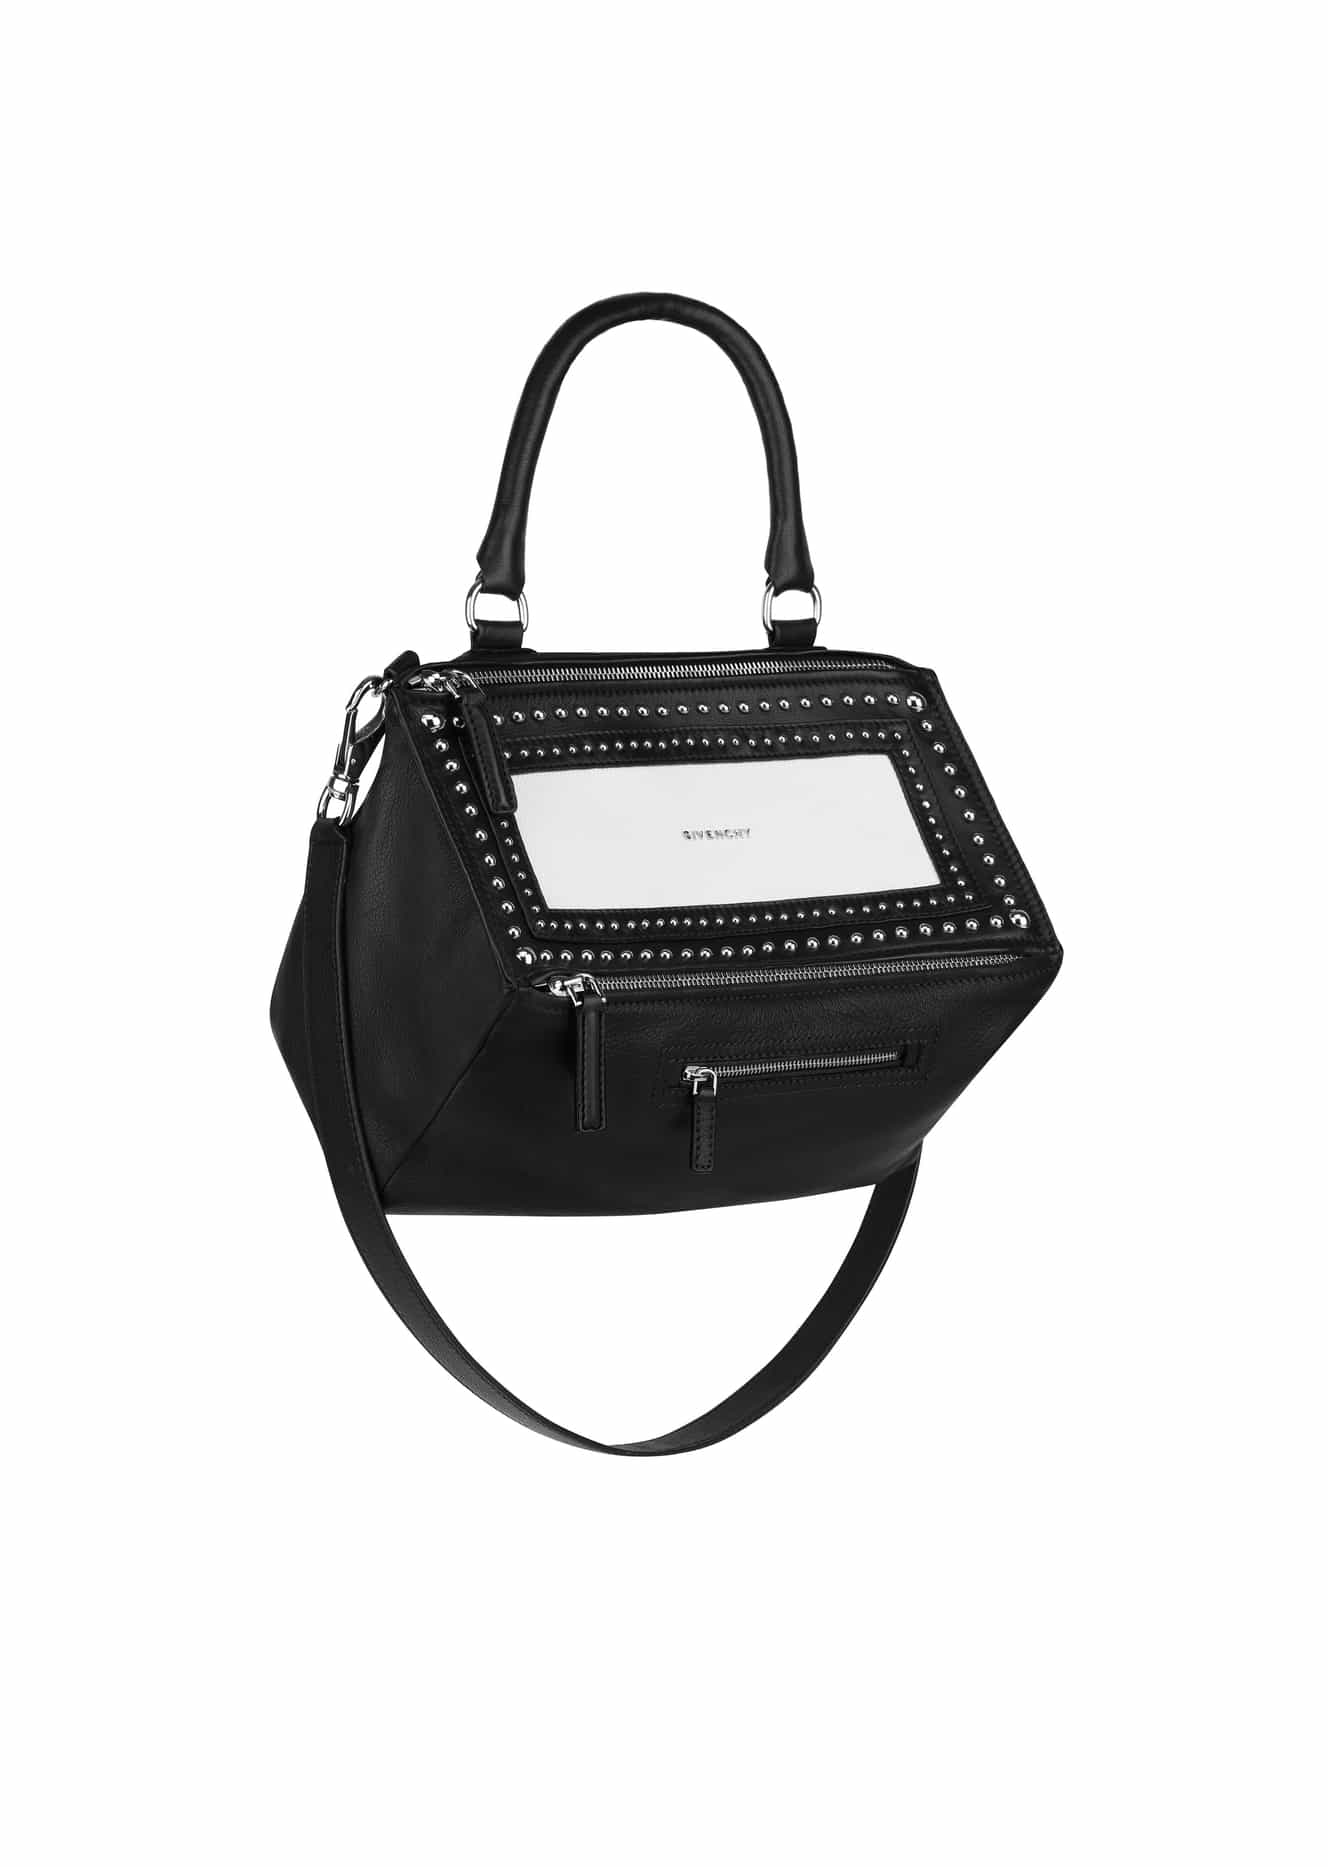 Givenchy Pandora Bag Reference Guide